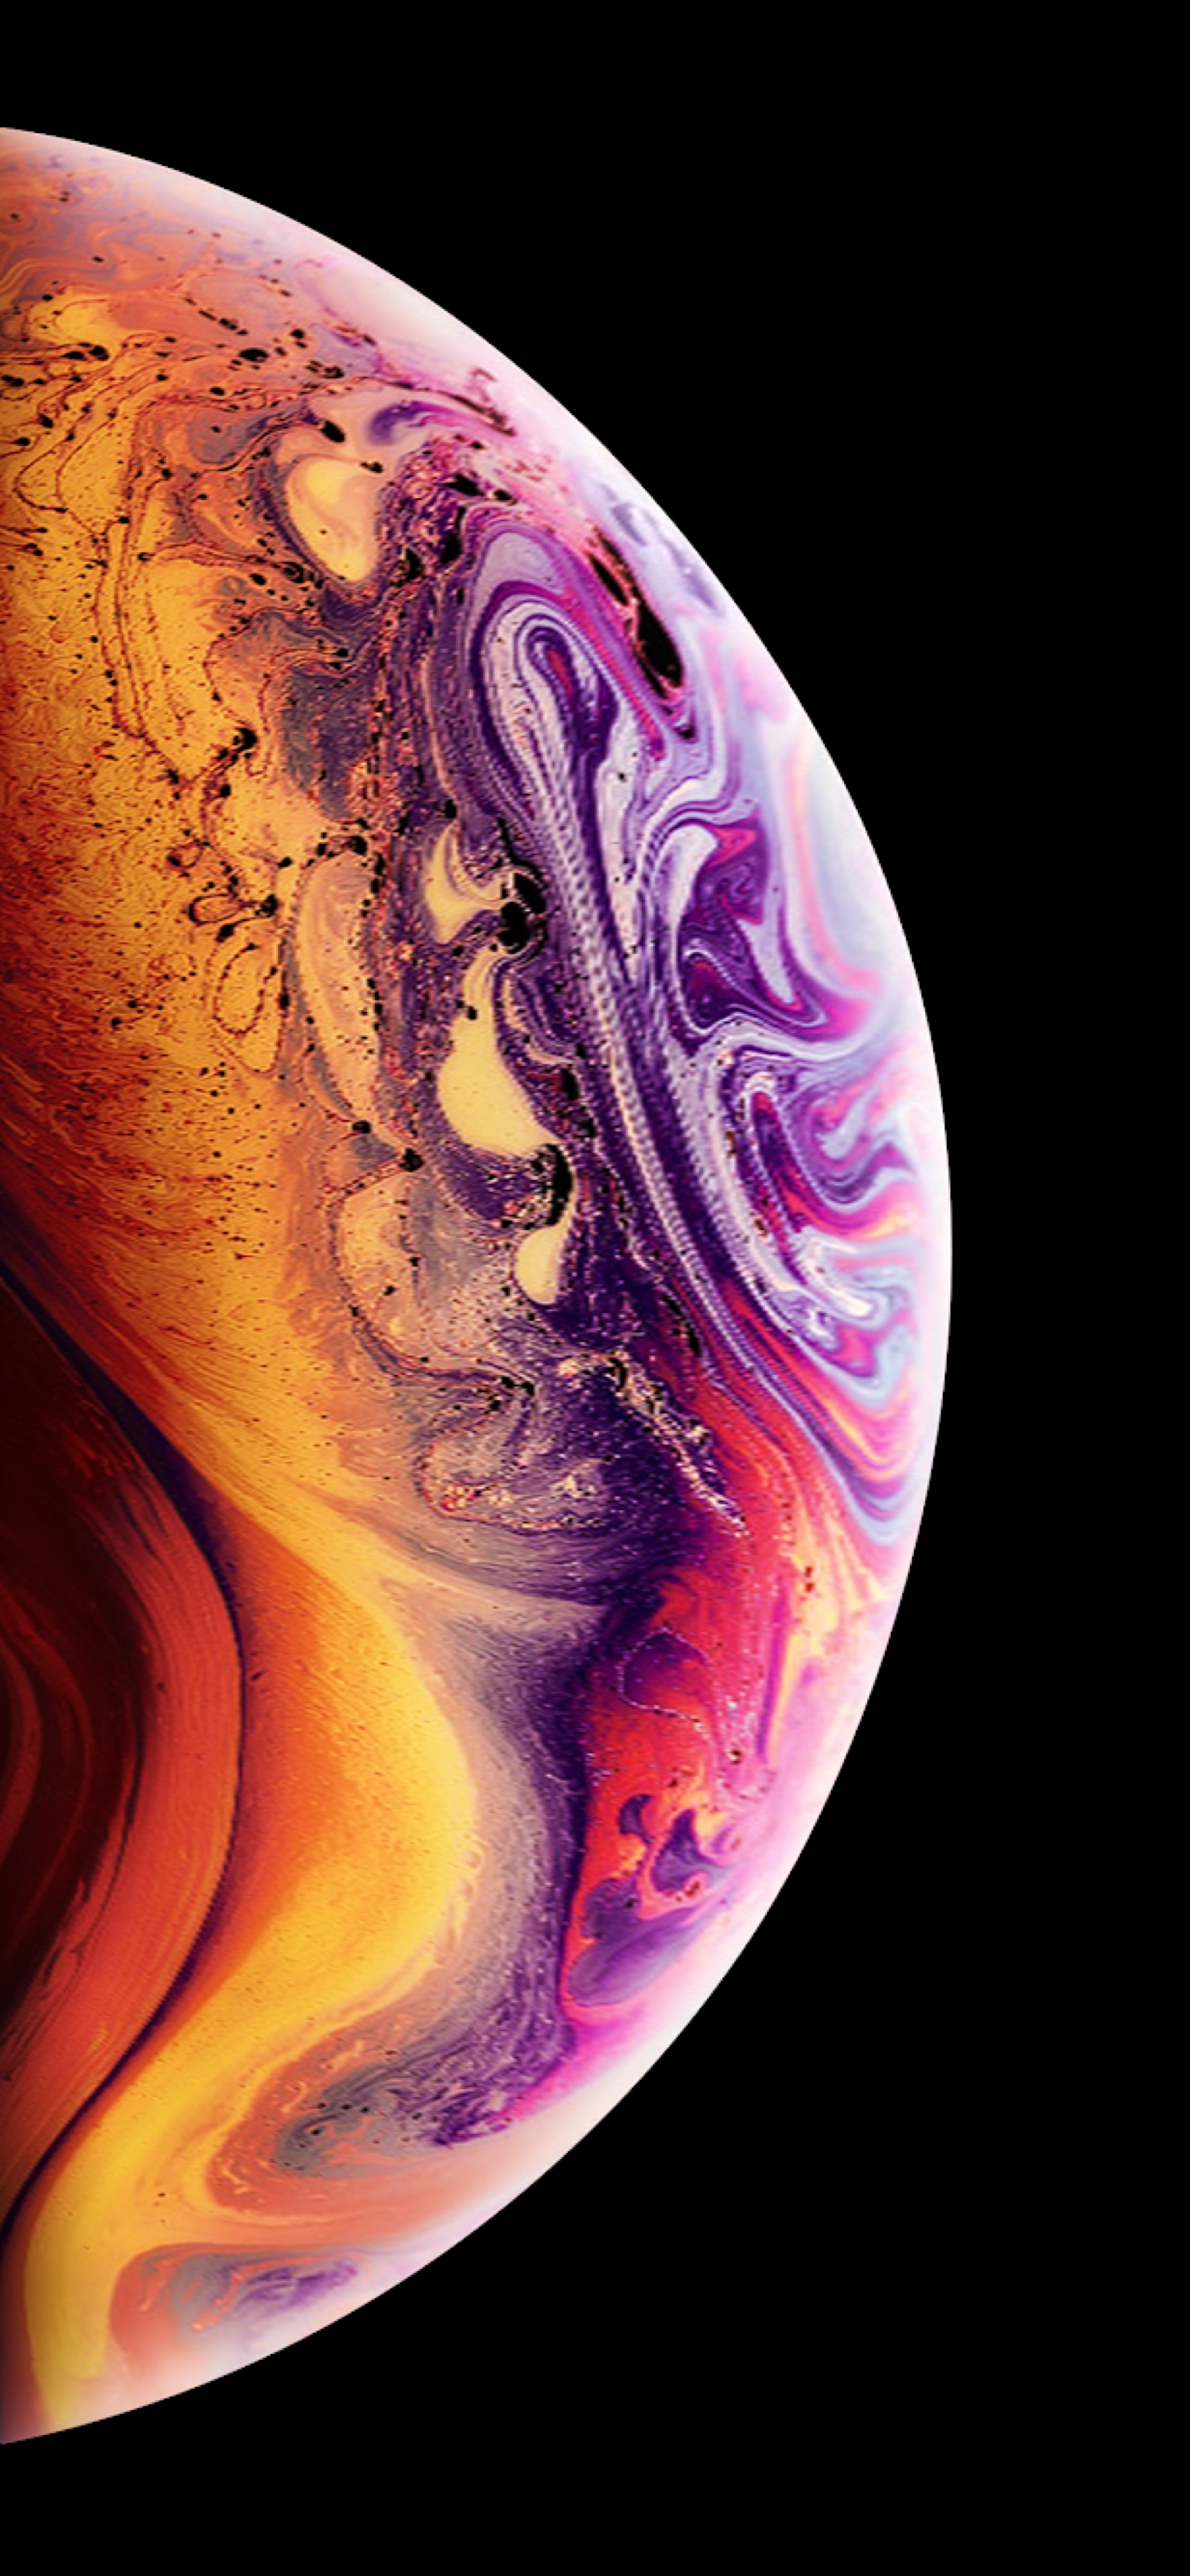 iPhone XS and XS Max Wallpapers in High Quality for Download 1892x4096